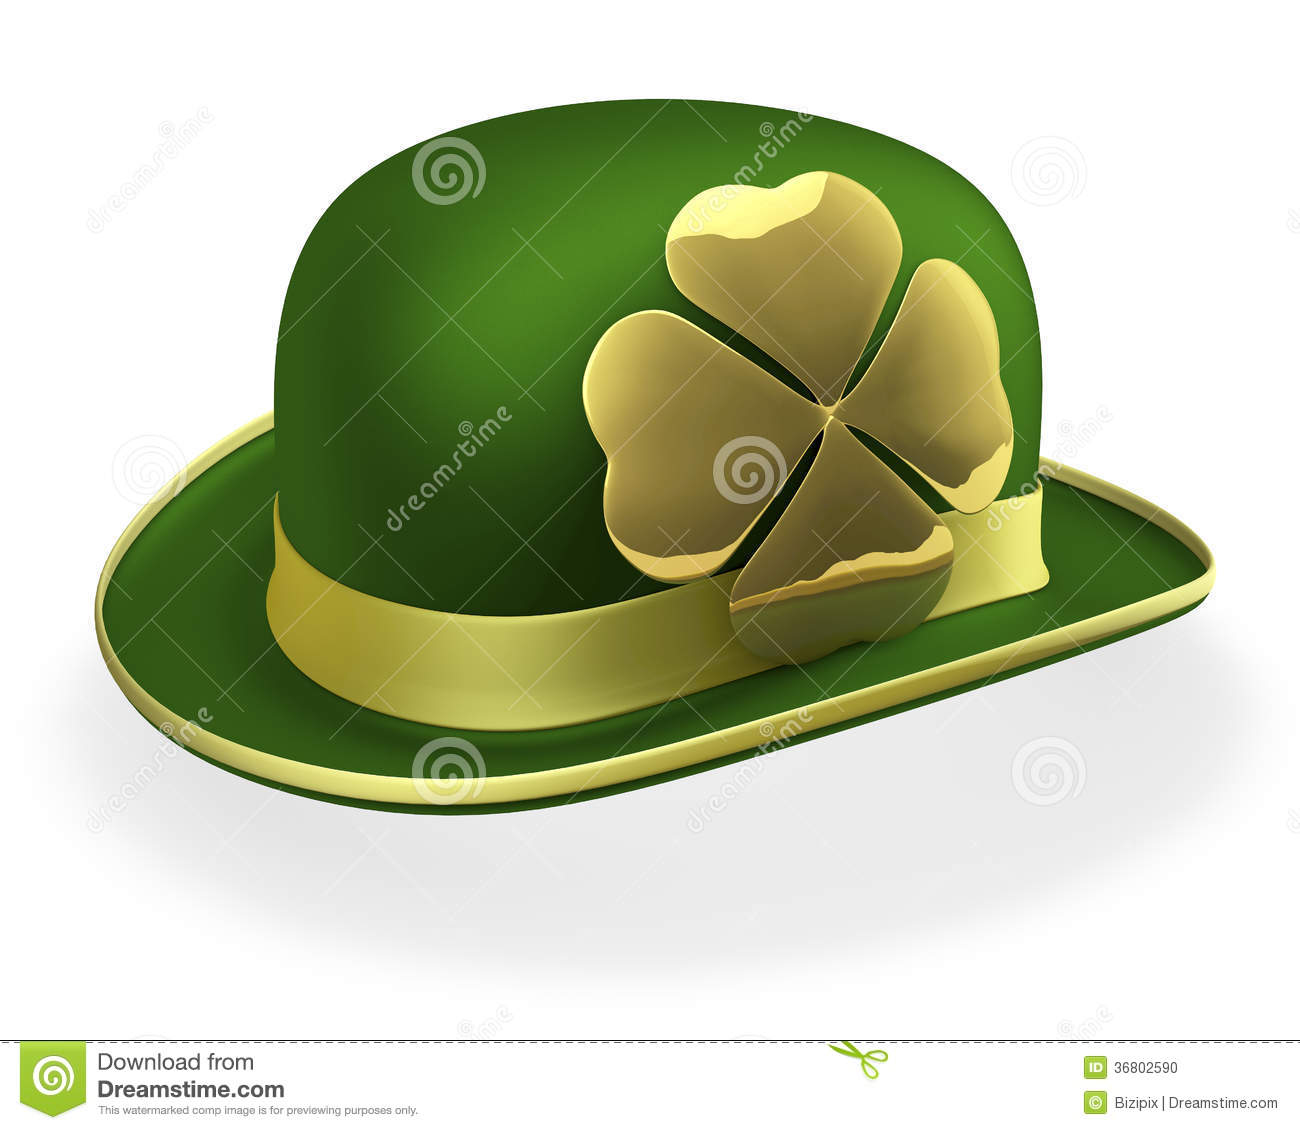 0d3c0943605c Green bowler hat with shiny, golden shamrock on side, 3d rendering on white  background